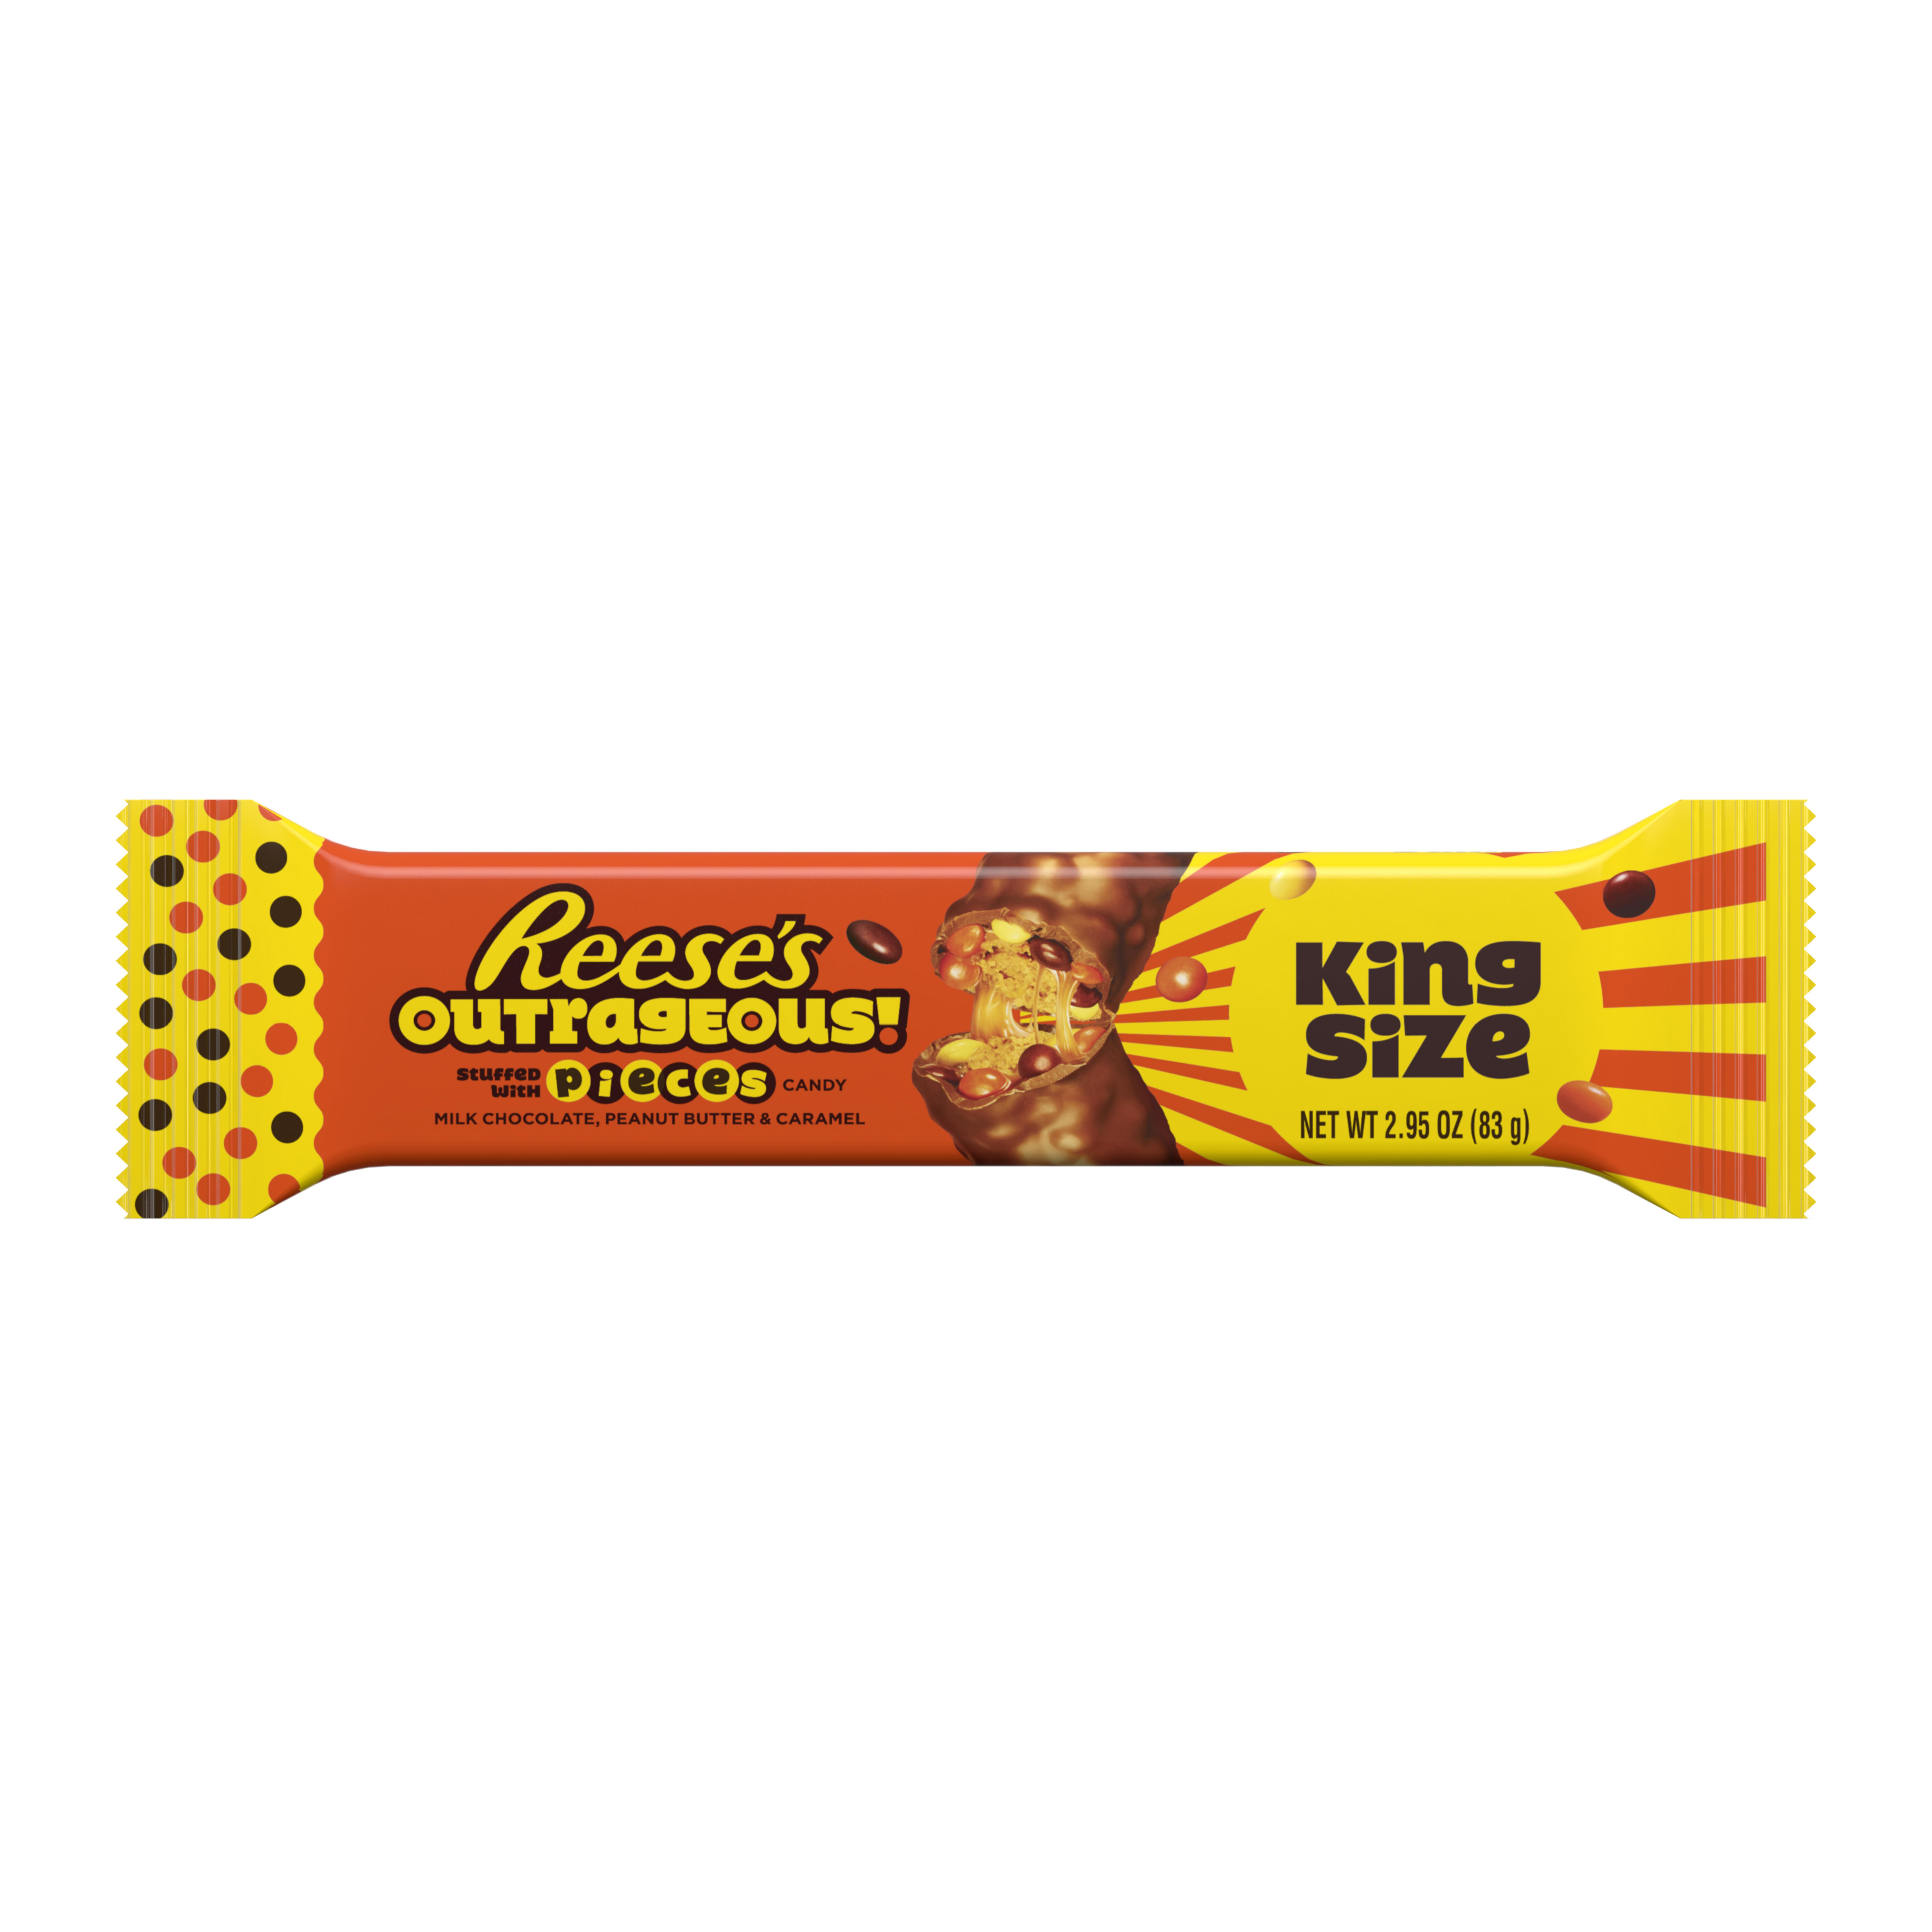 Reese's Outrageous King Size Stuffed With Pieces Candy - 2.95oz